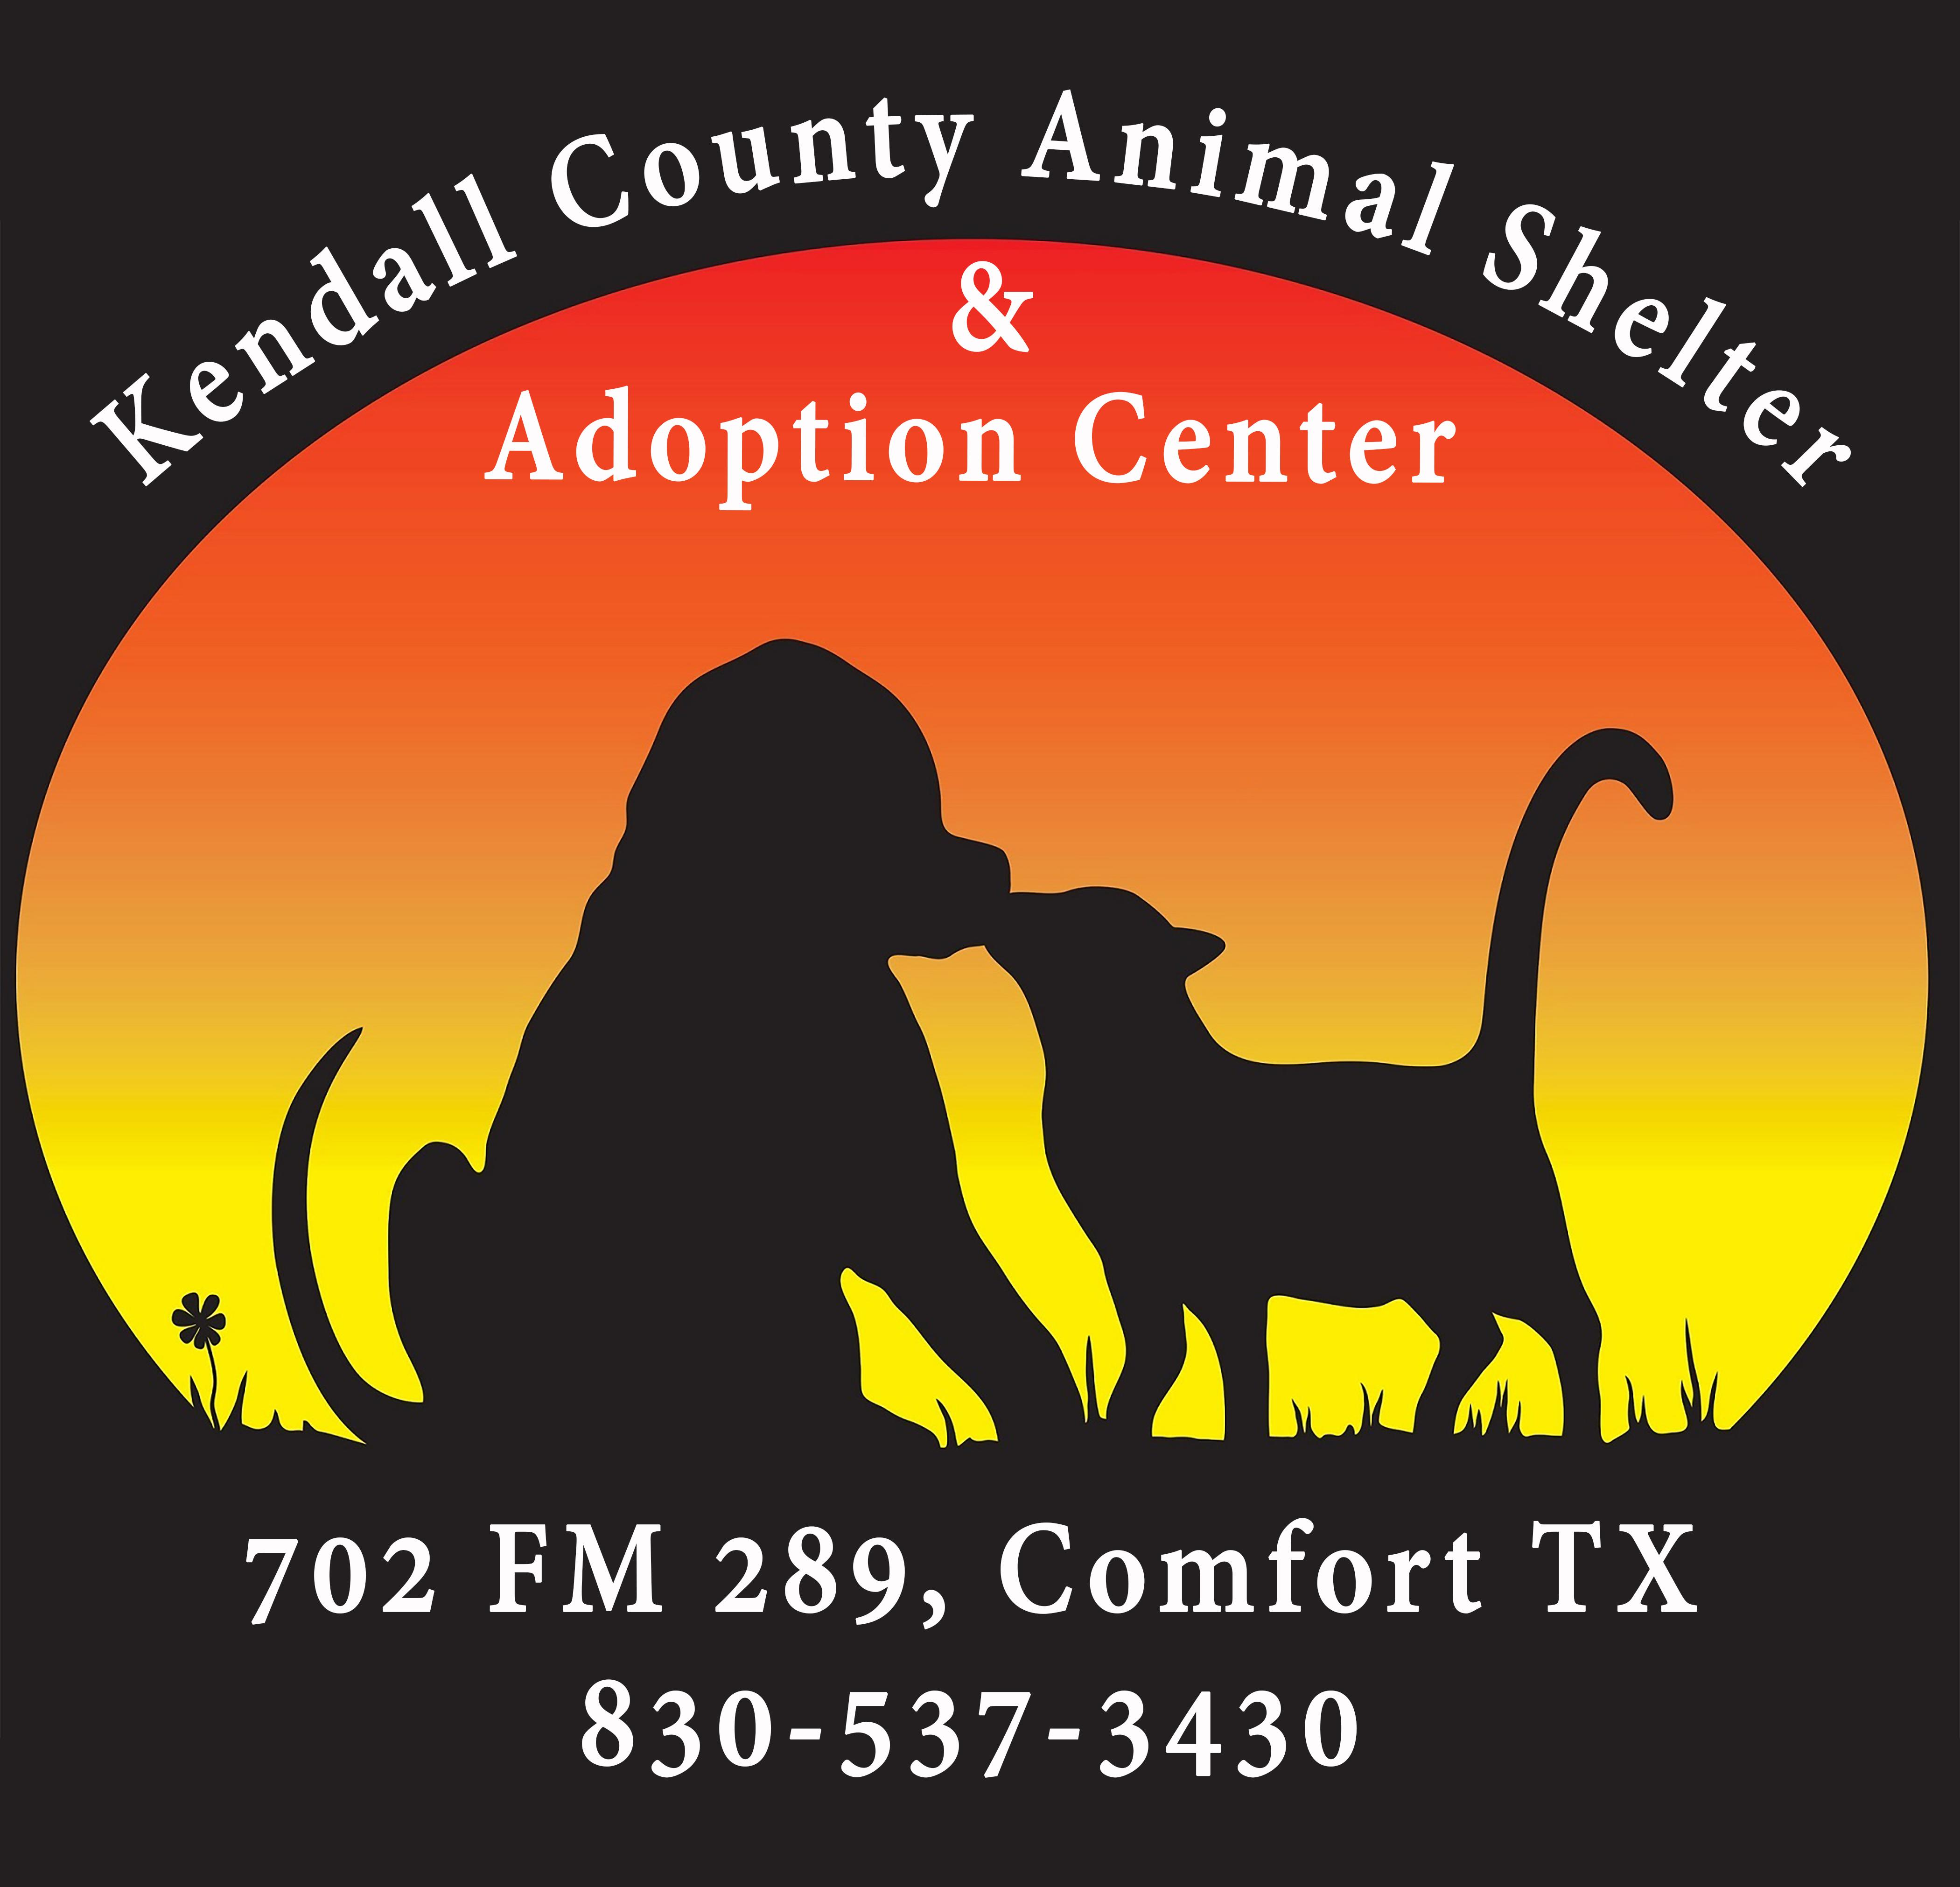 Kendall County Animal Shelter